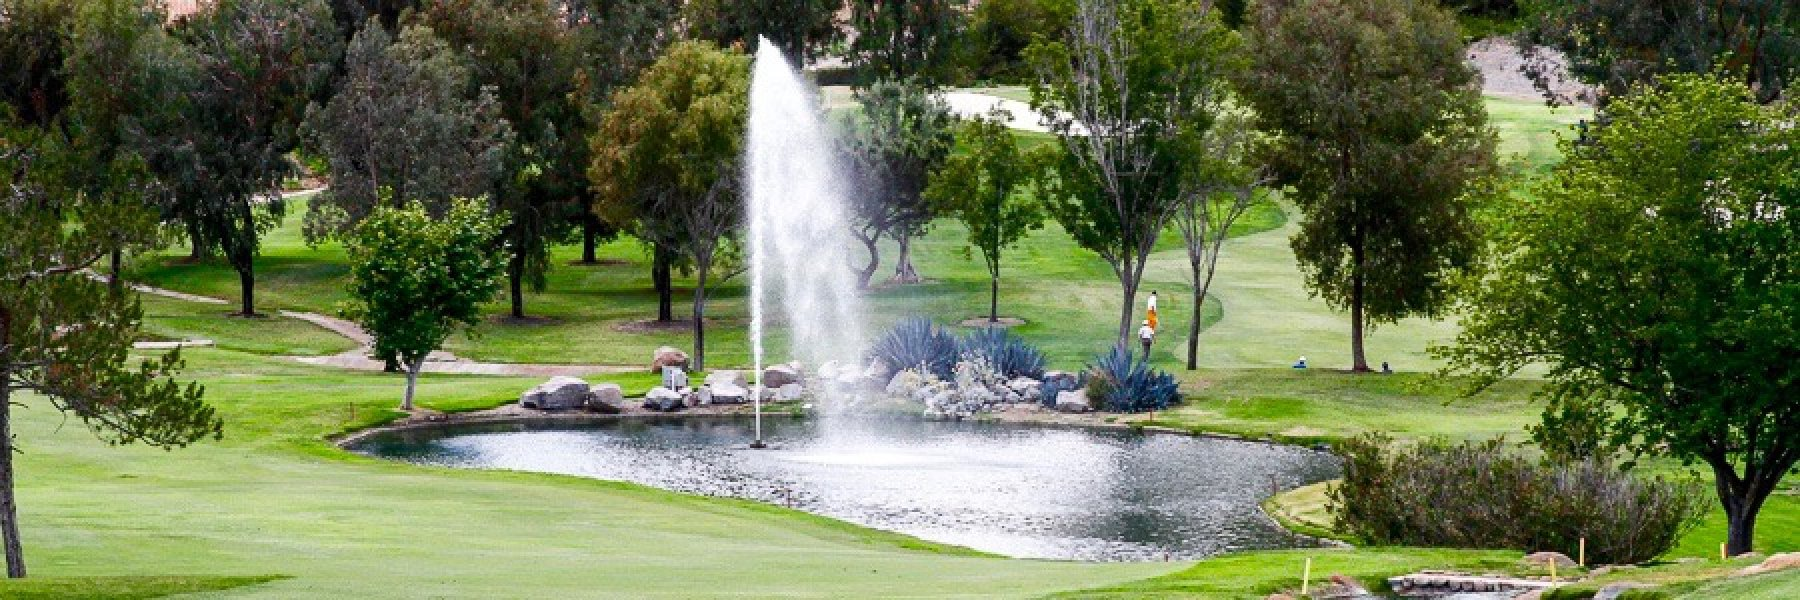 The Greens is a community of homes in Rancho Bernardo California